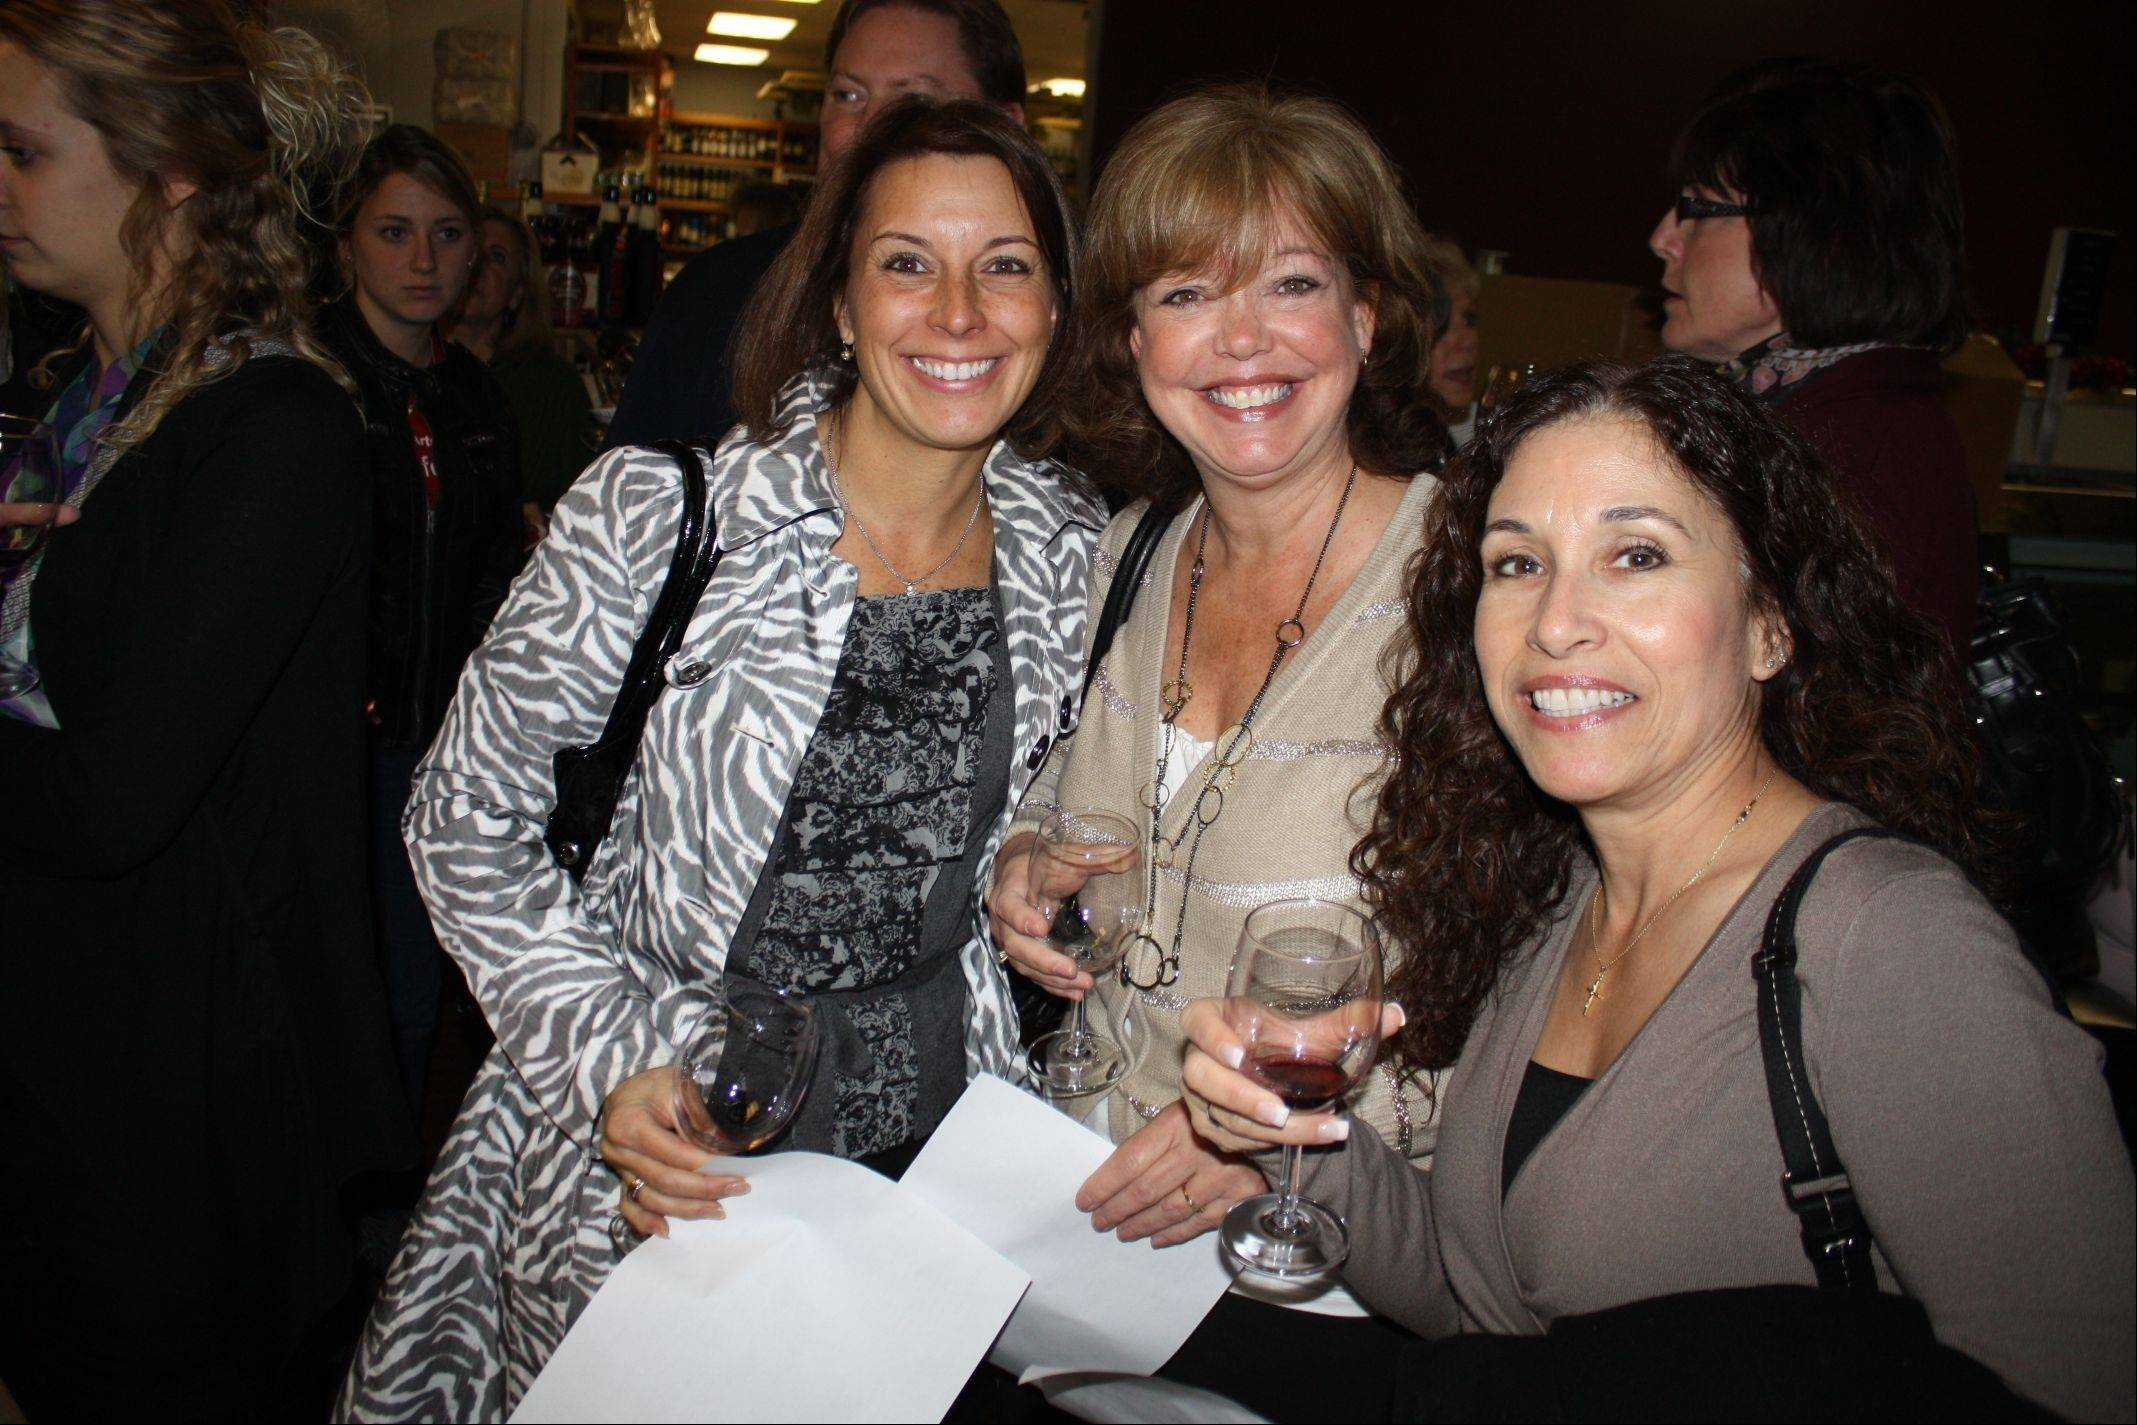 Lisa Bracker, Debbie Wille and Michelle Zordan at the fundraising ICompete Wine Tasting in 2012.